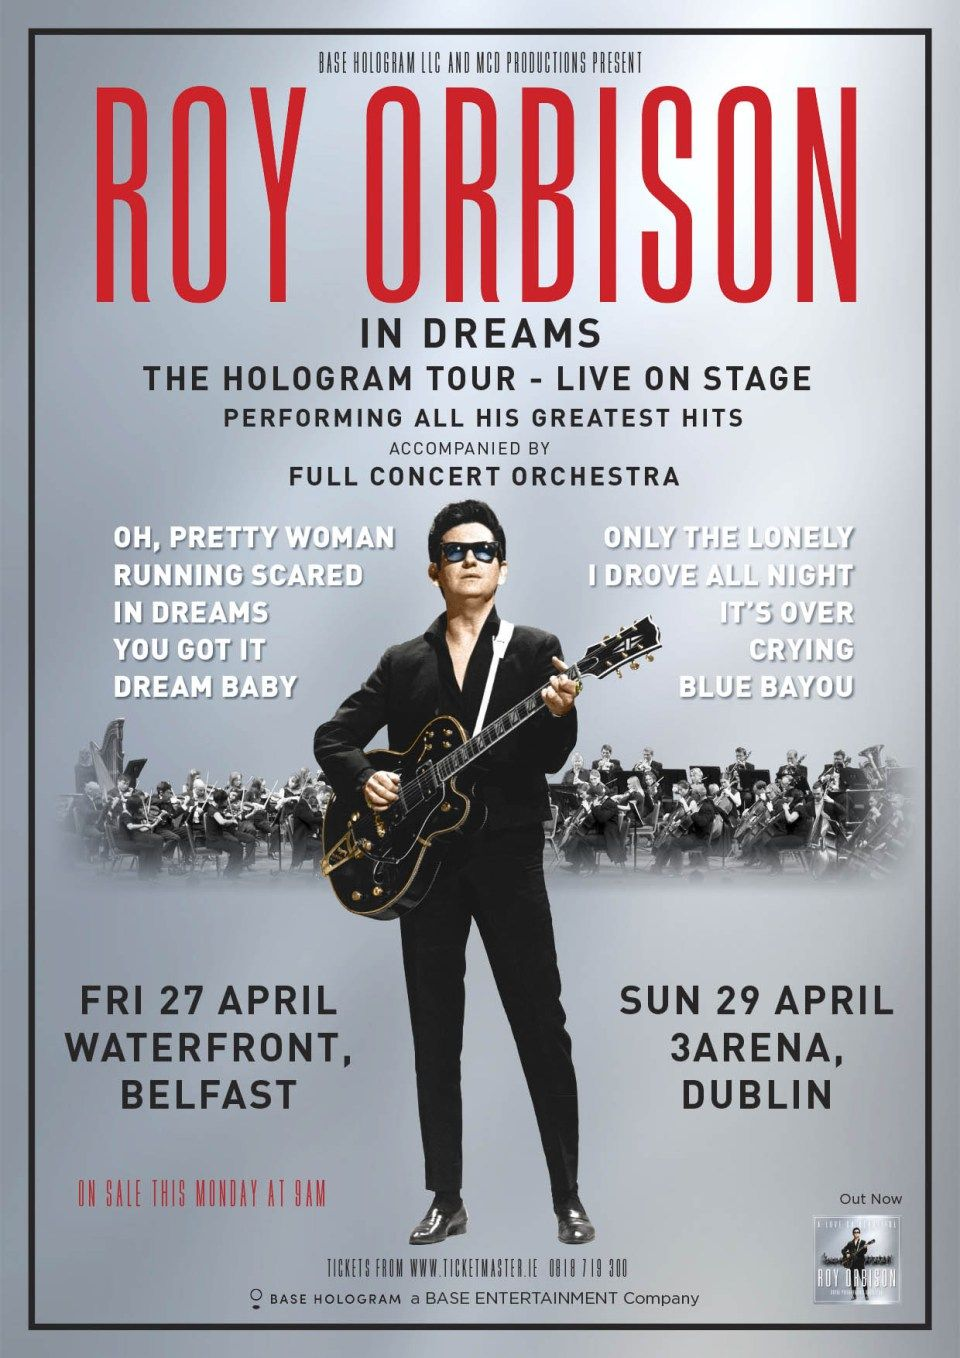 Roy Orbison In Dreams Hologram Tour (With images) Roy